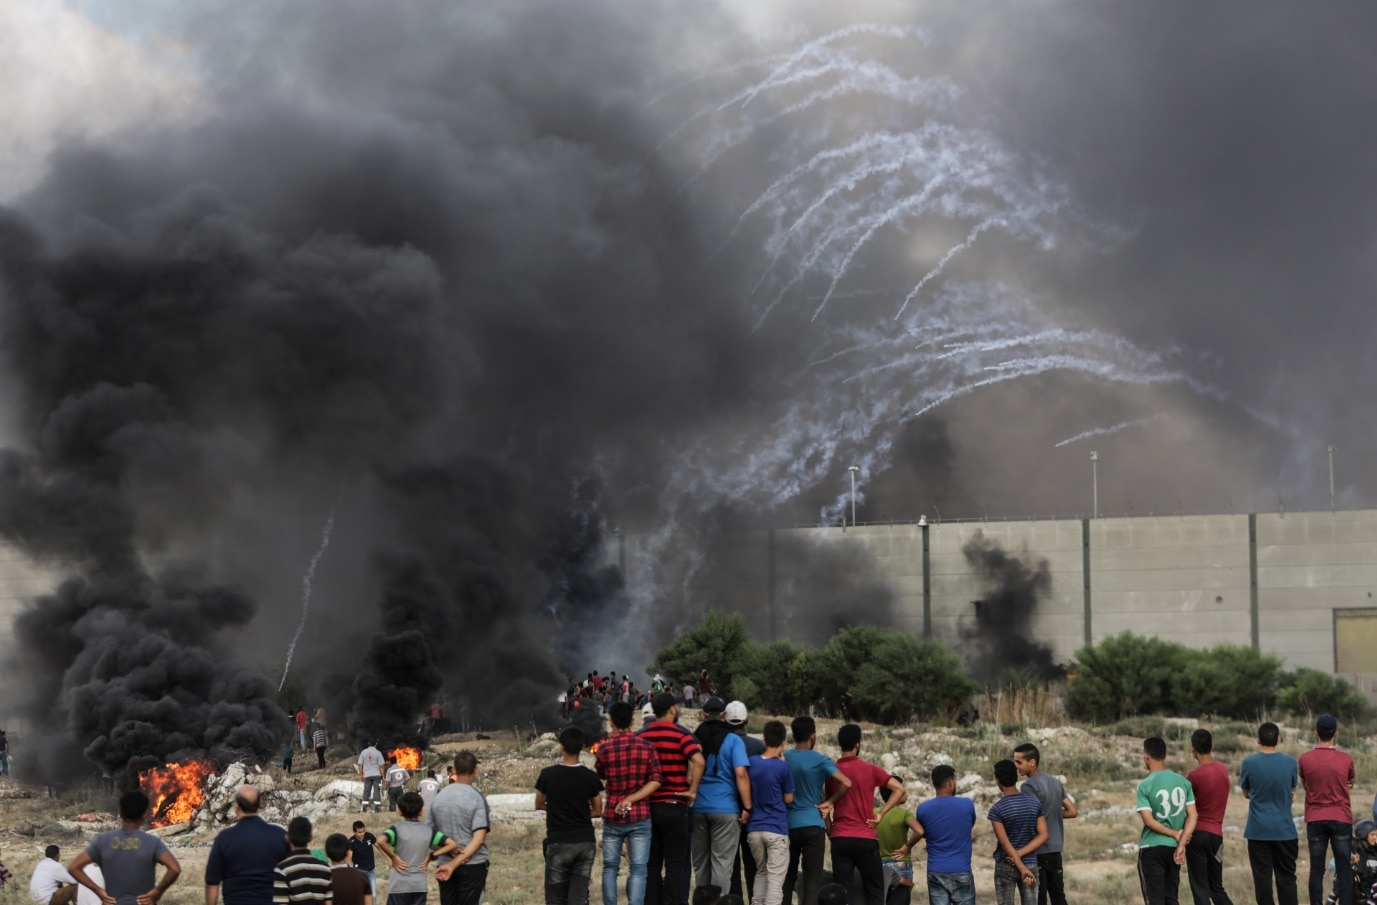 Palestinians protesters take part during the clashes with Israeli troops near the border with Israel in the east of Gaza City on, 20 July 2018.